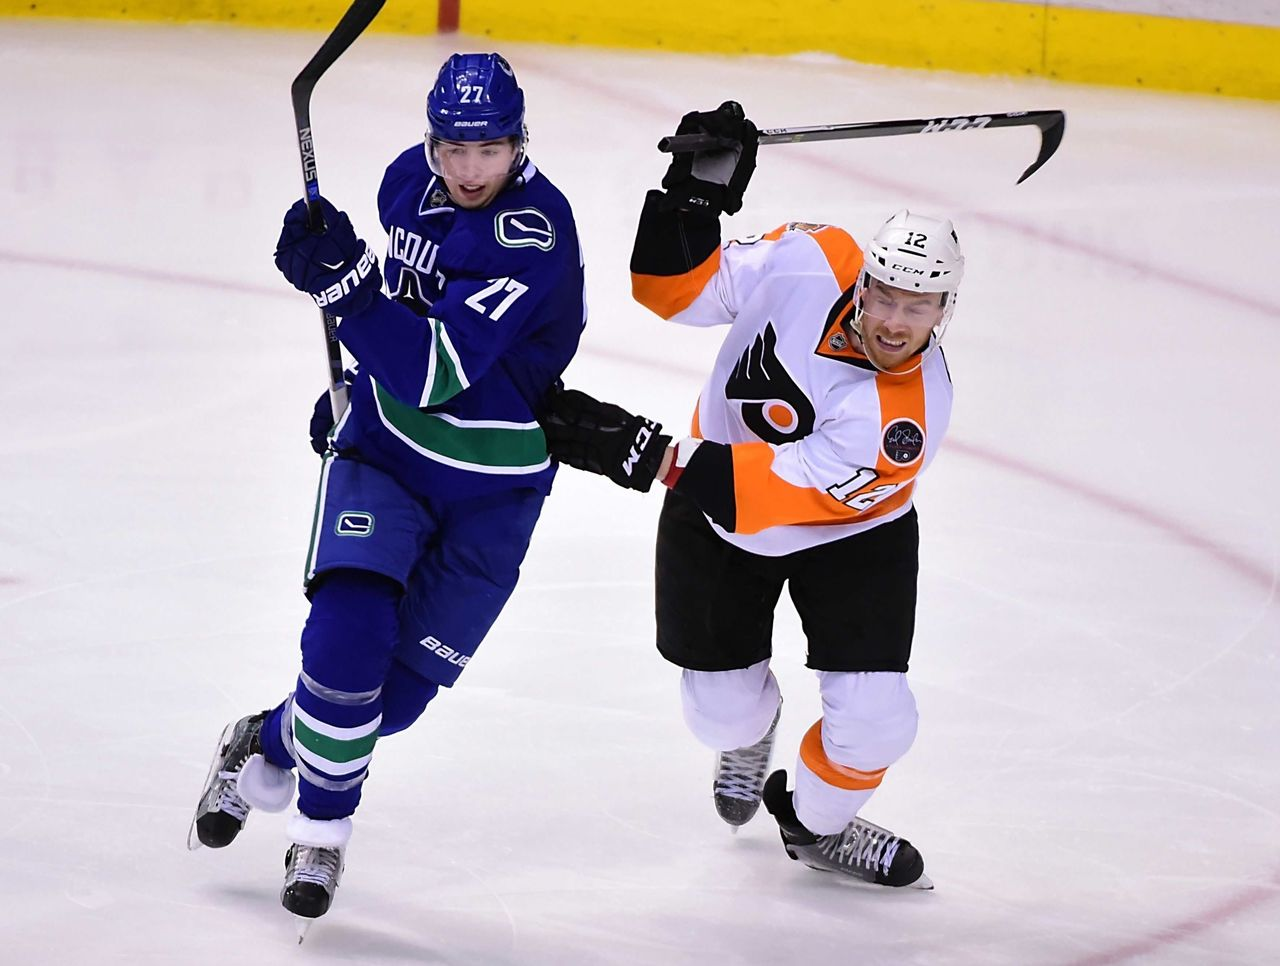 Cropped 2017 02 20t060008z 786323639 nocid rtrmadp 3 nhl philadelphia flyers at vancouver canucks